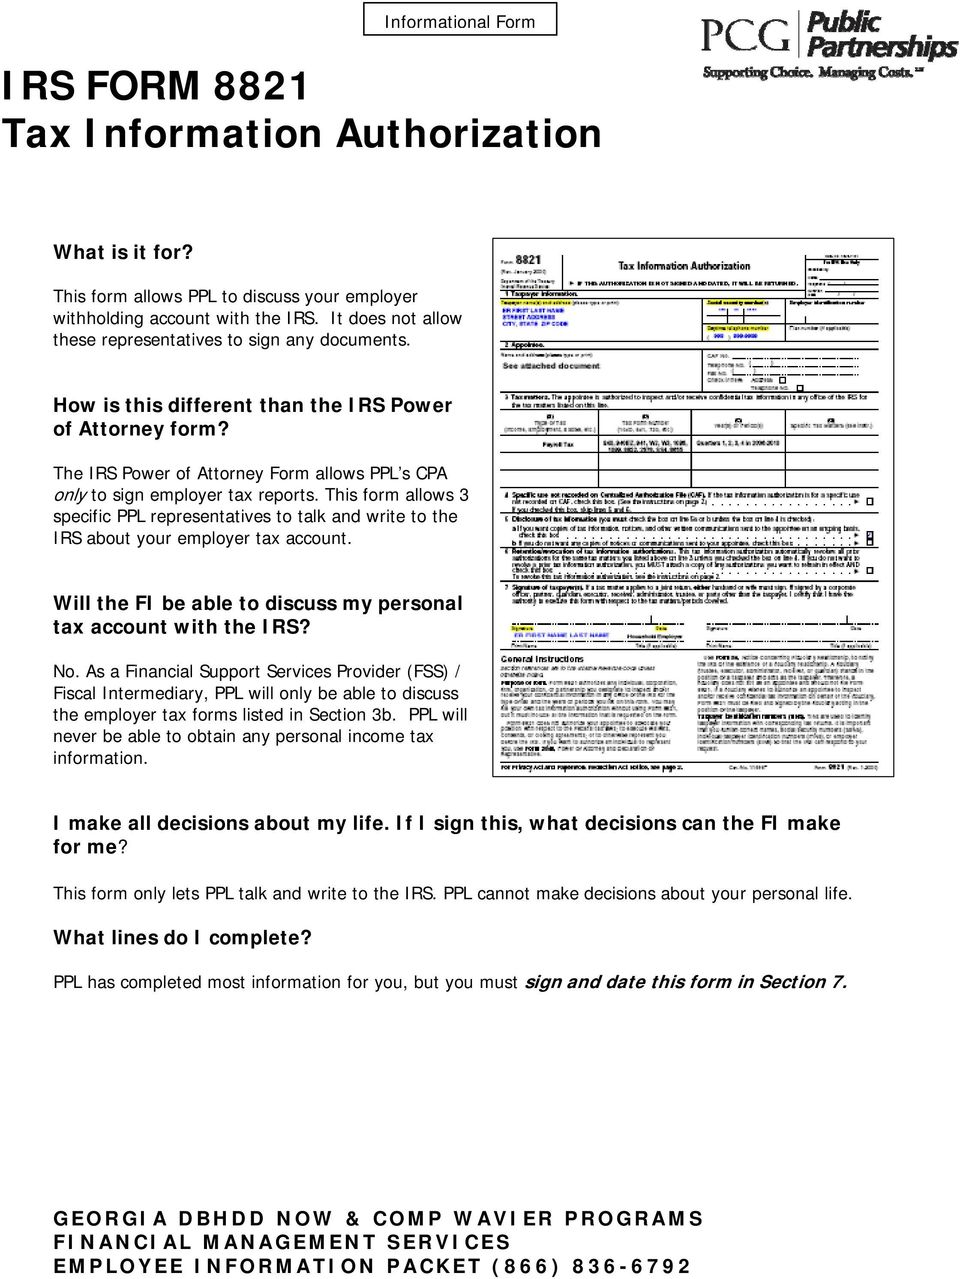 The IRS Power of Attorney Form allows PPL s CPA only to sign employer tax reports. This form allows 3 specific PPL representatives to talk and write to the IRS about your employer tax account.